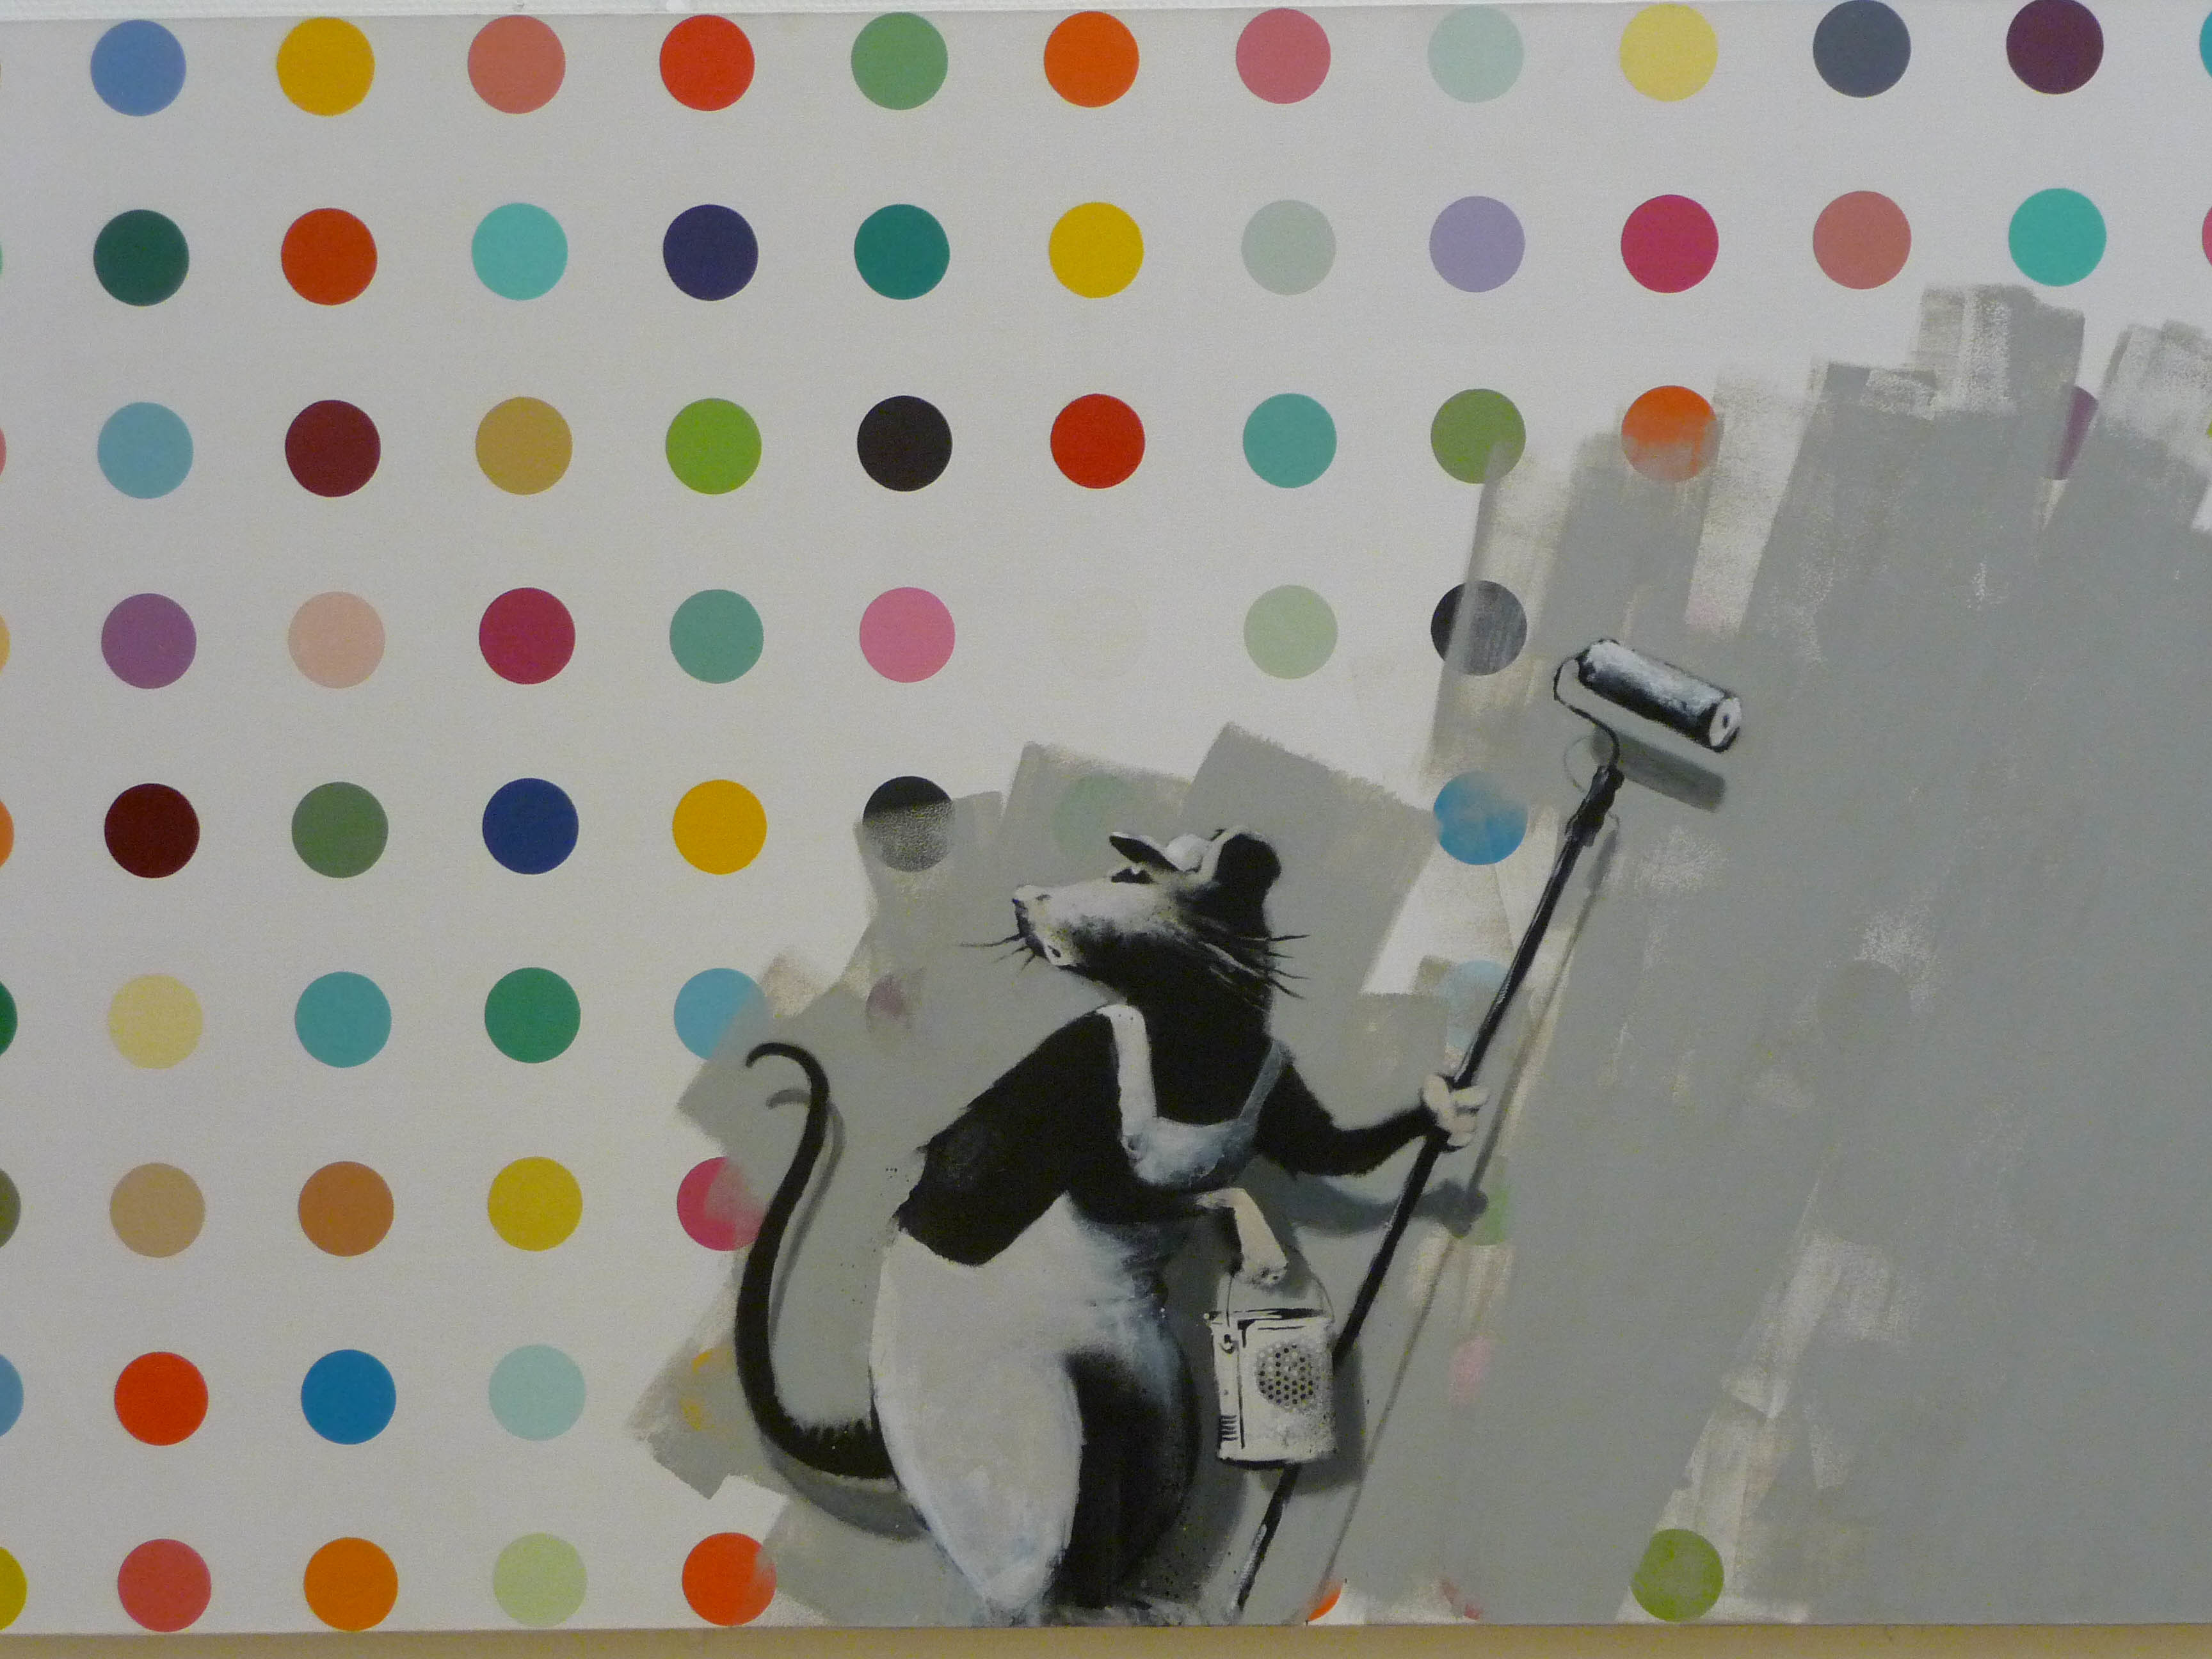 banksy does damien hirst HD Wallpaper